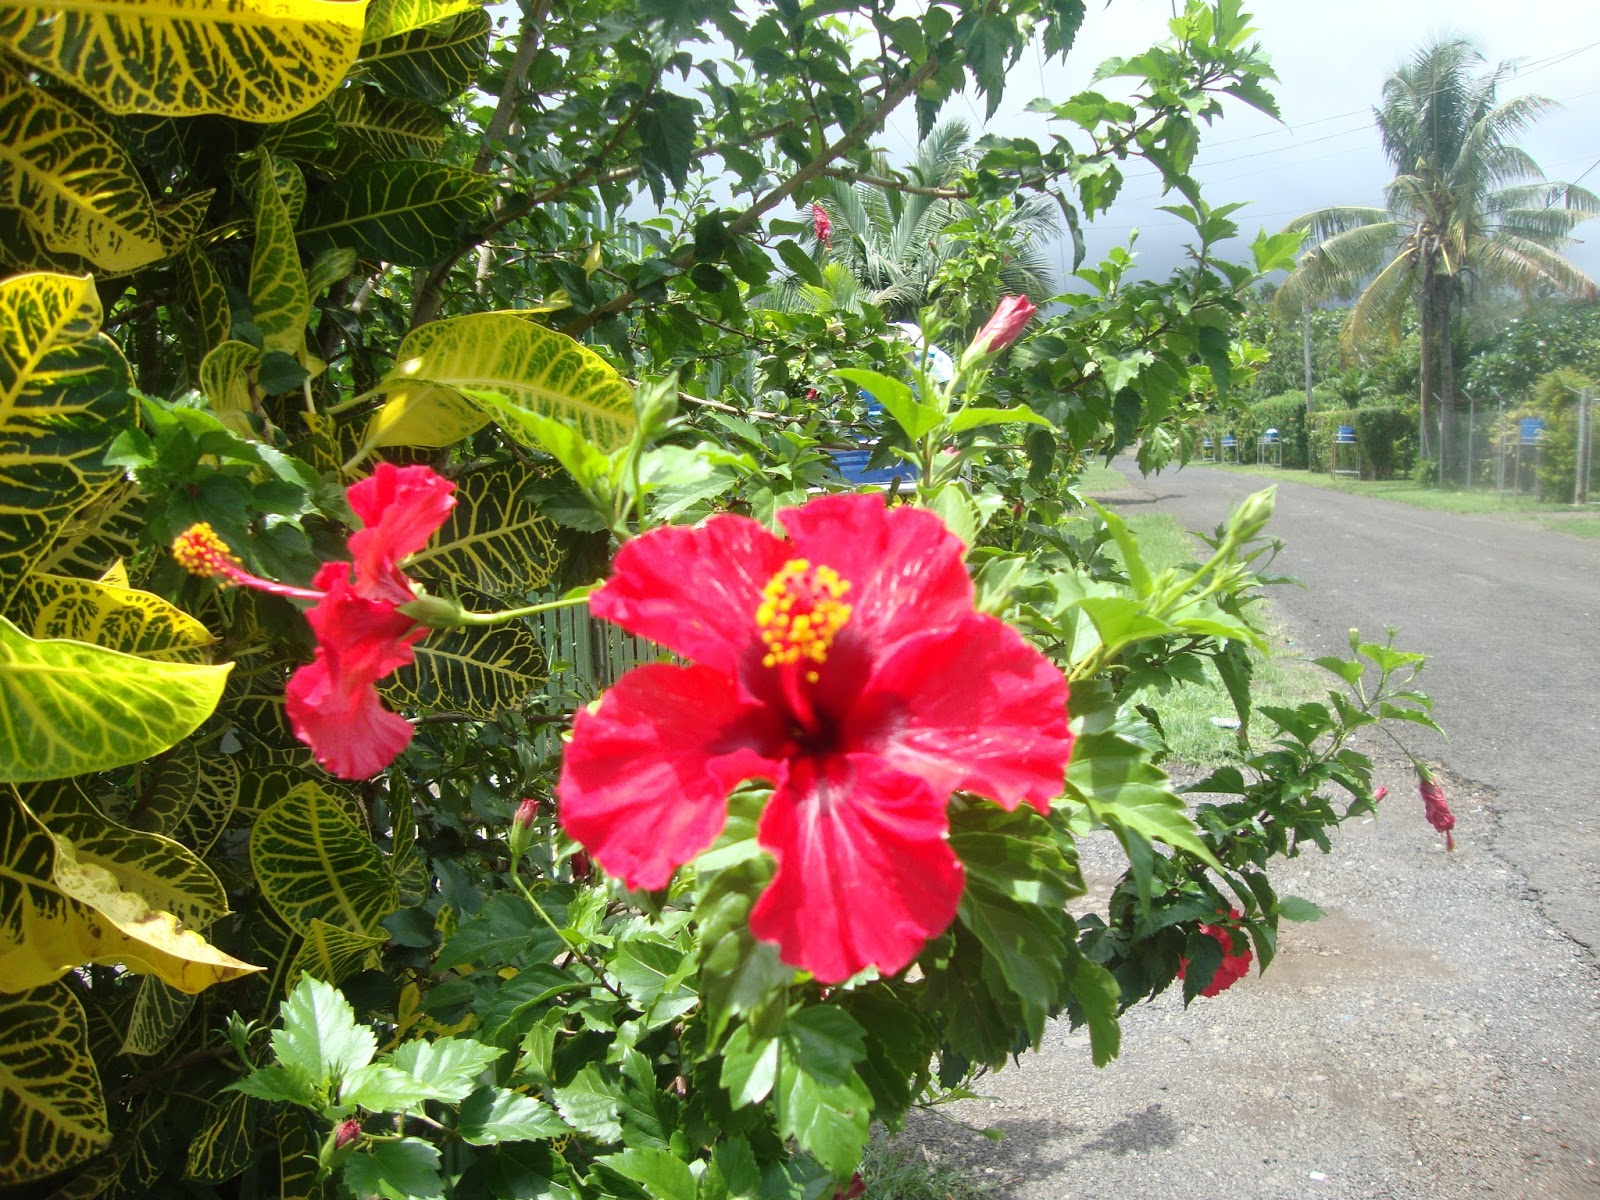 Jorgensensjourneys tropical flowers some we have seen before when we lived in hawaii and some are totally new we dont know the names so have fun looking at the pictures izmirmasajfo